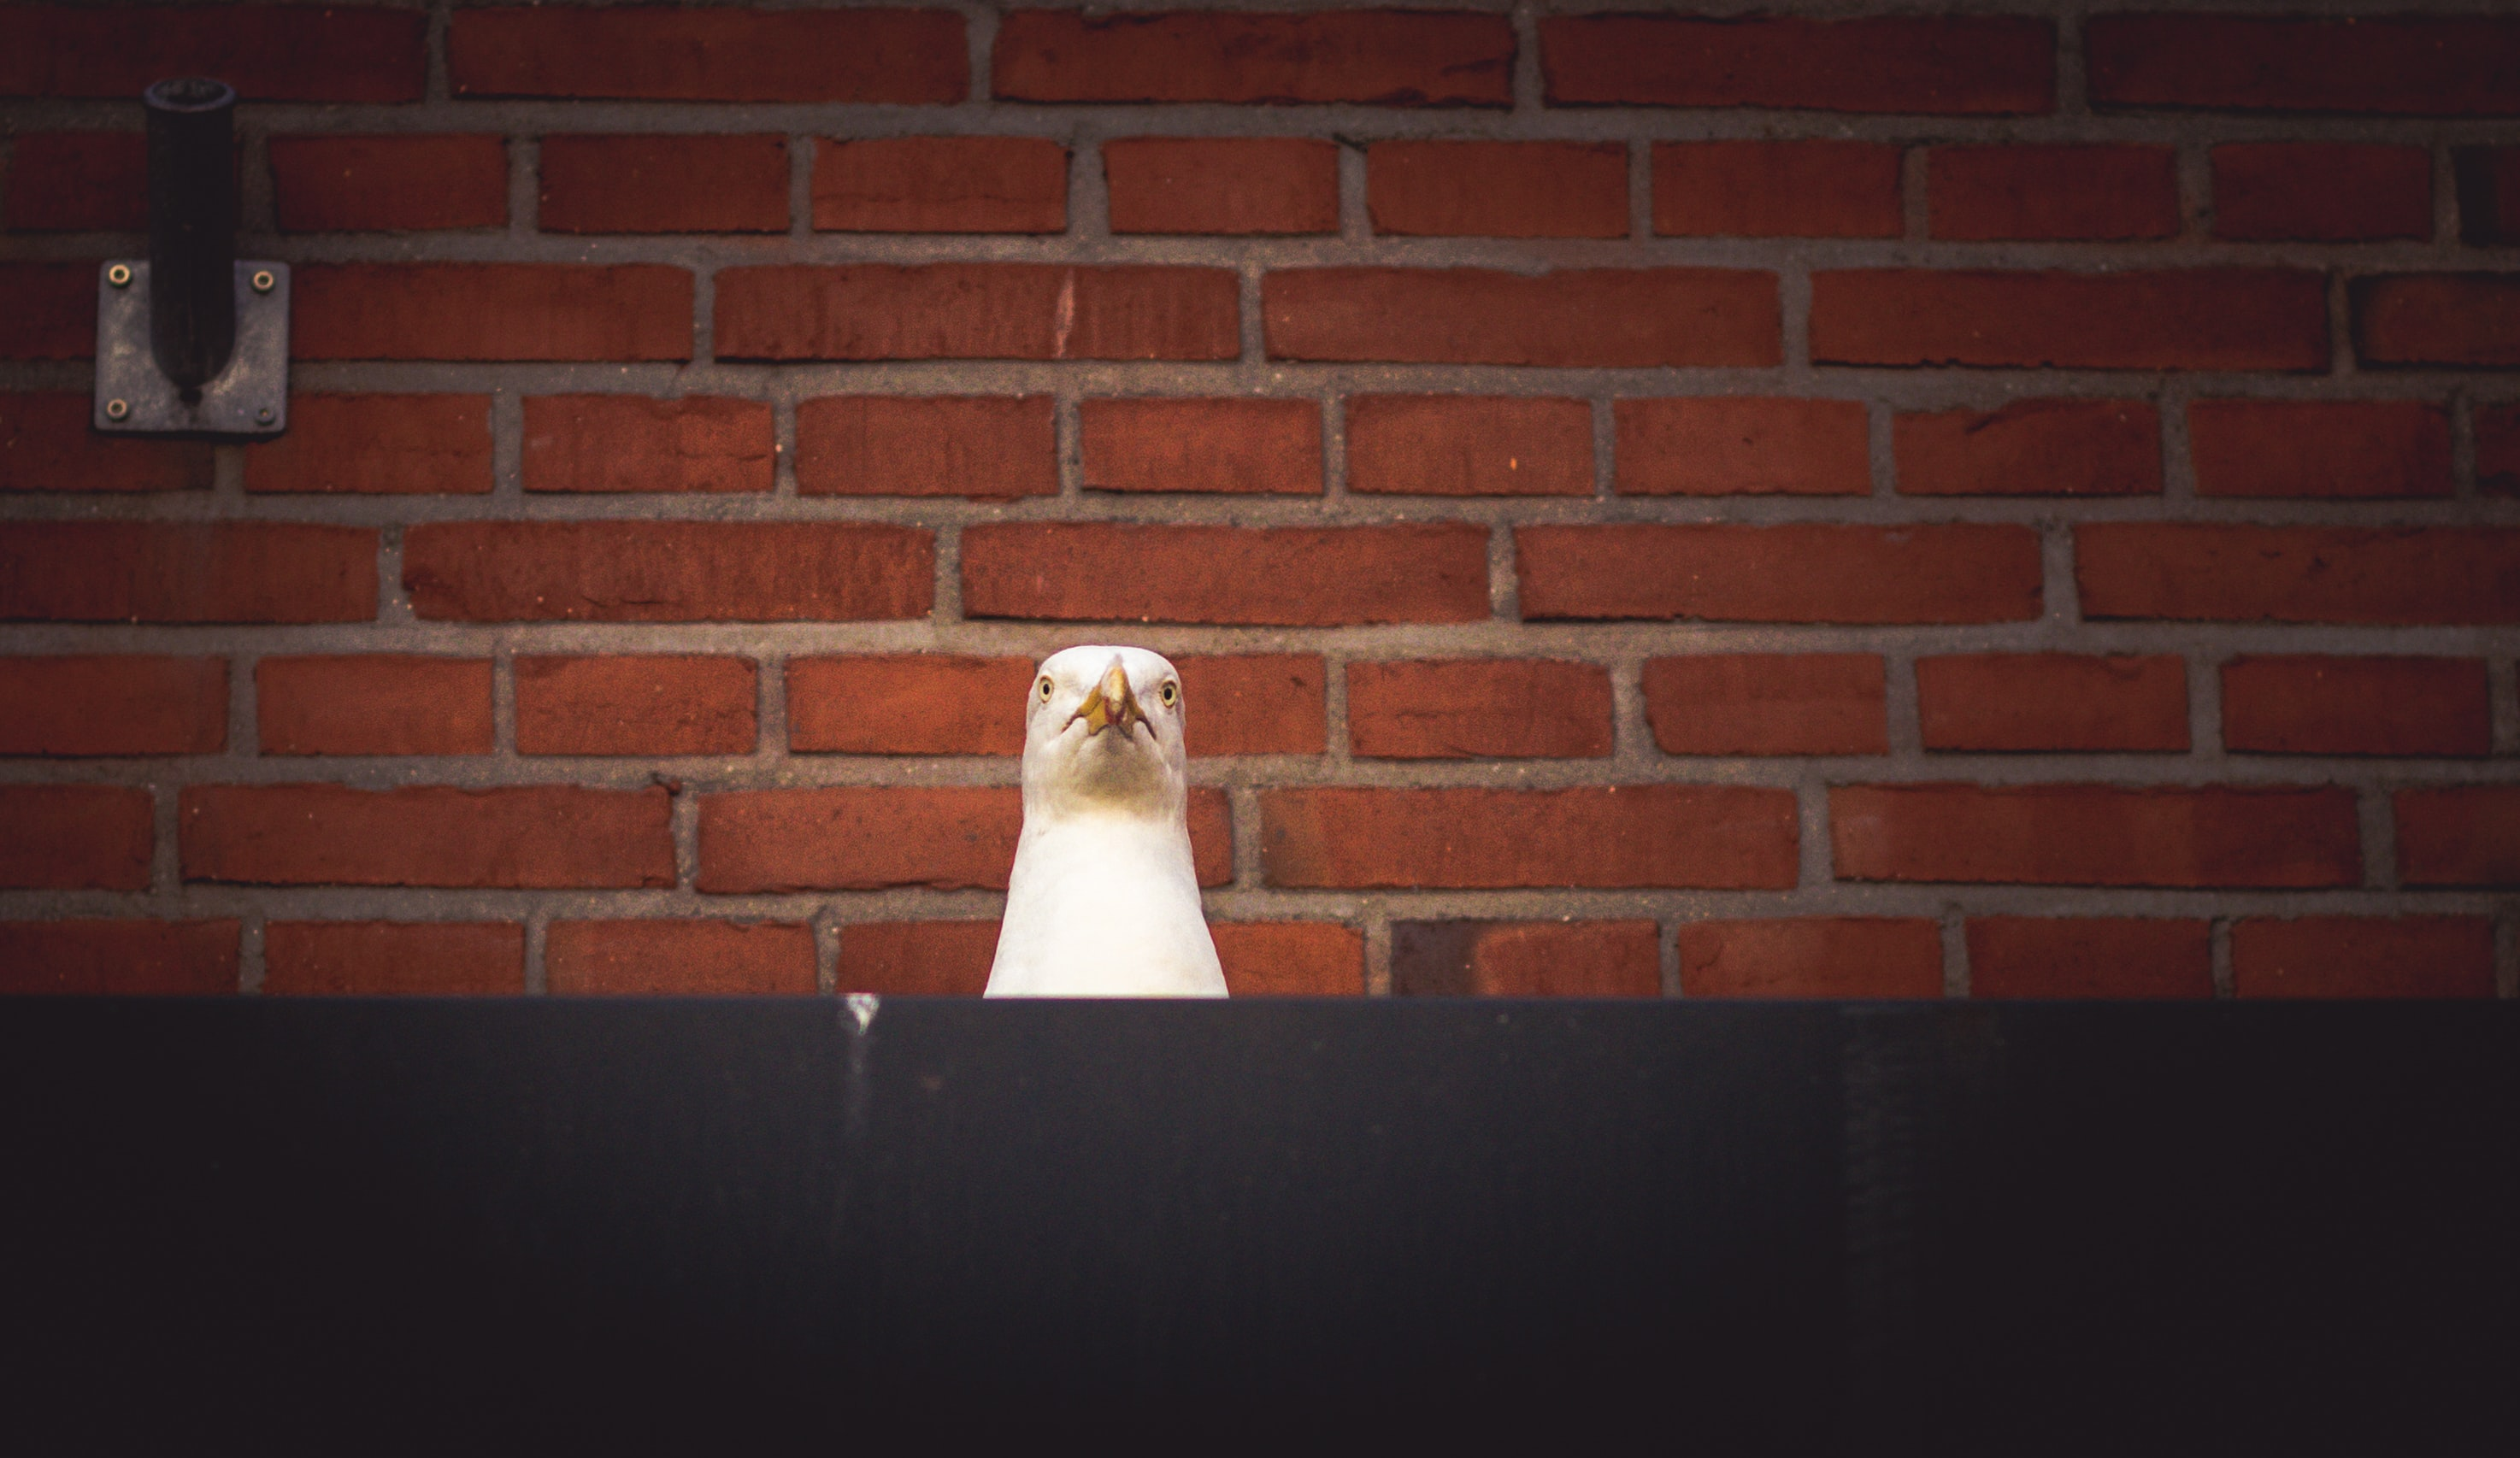 white bird near wall